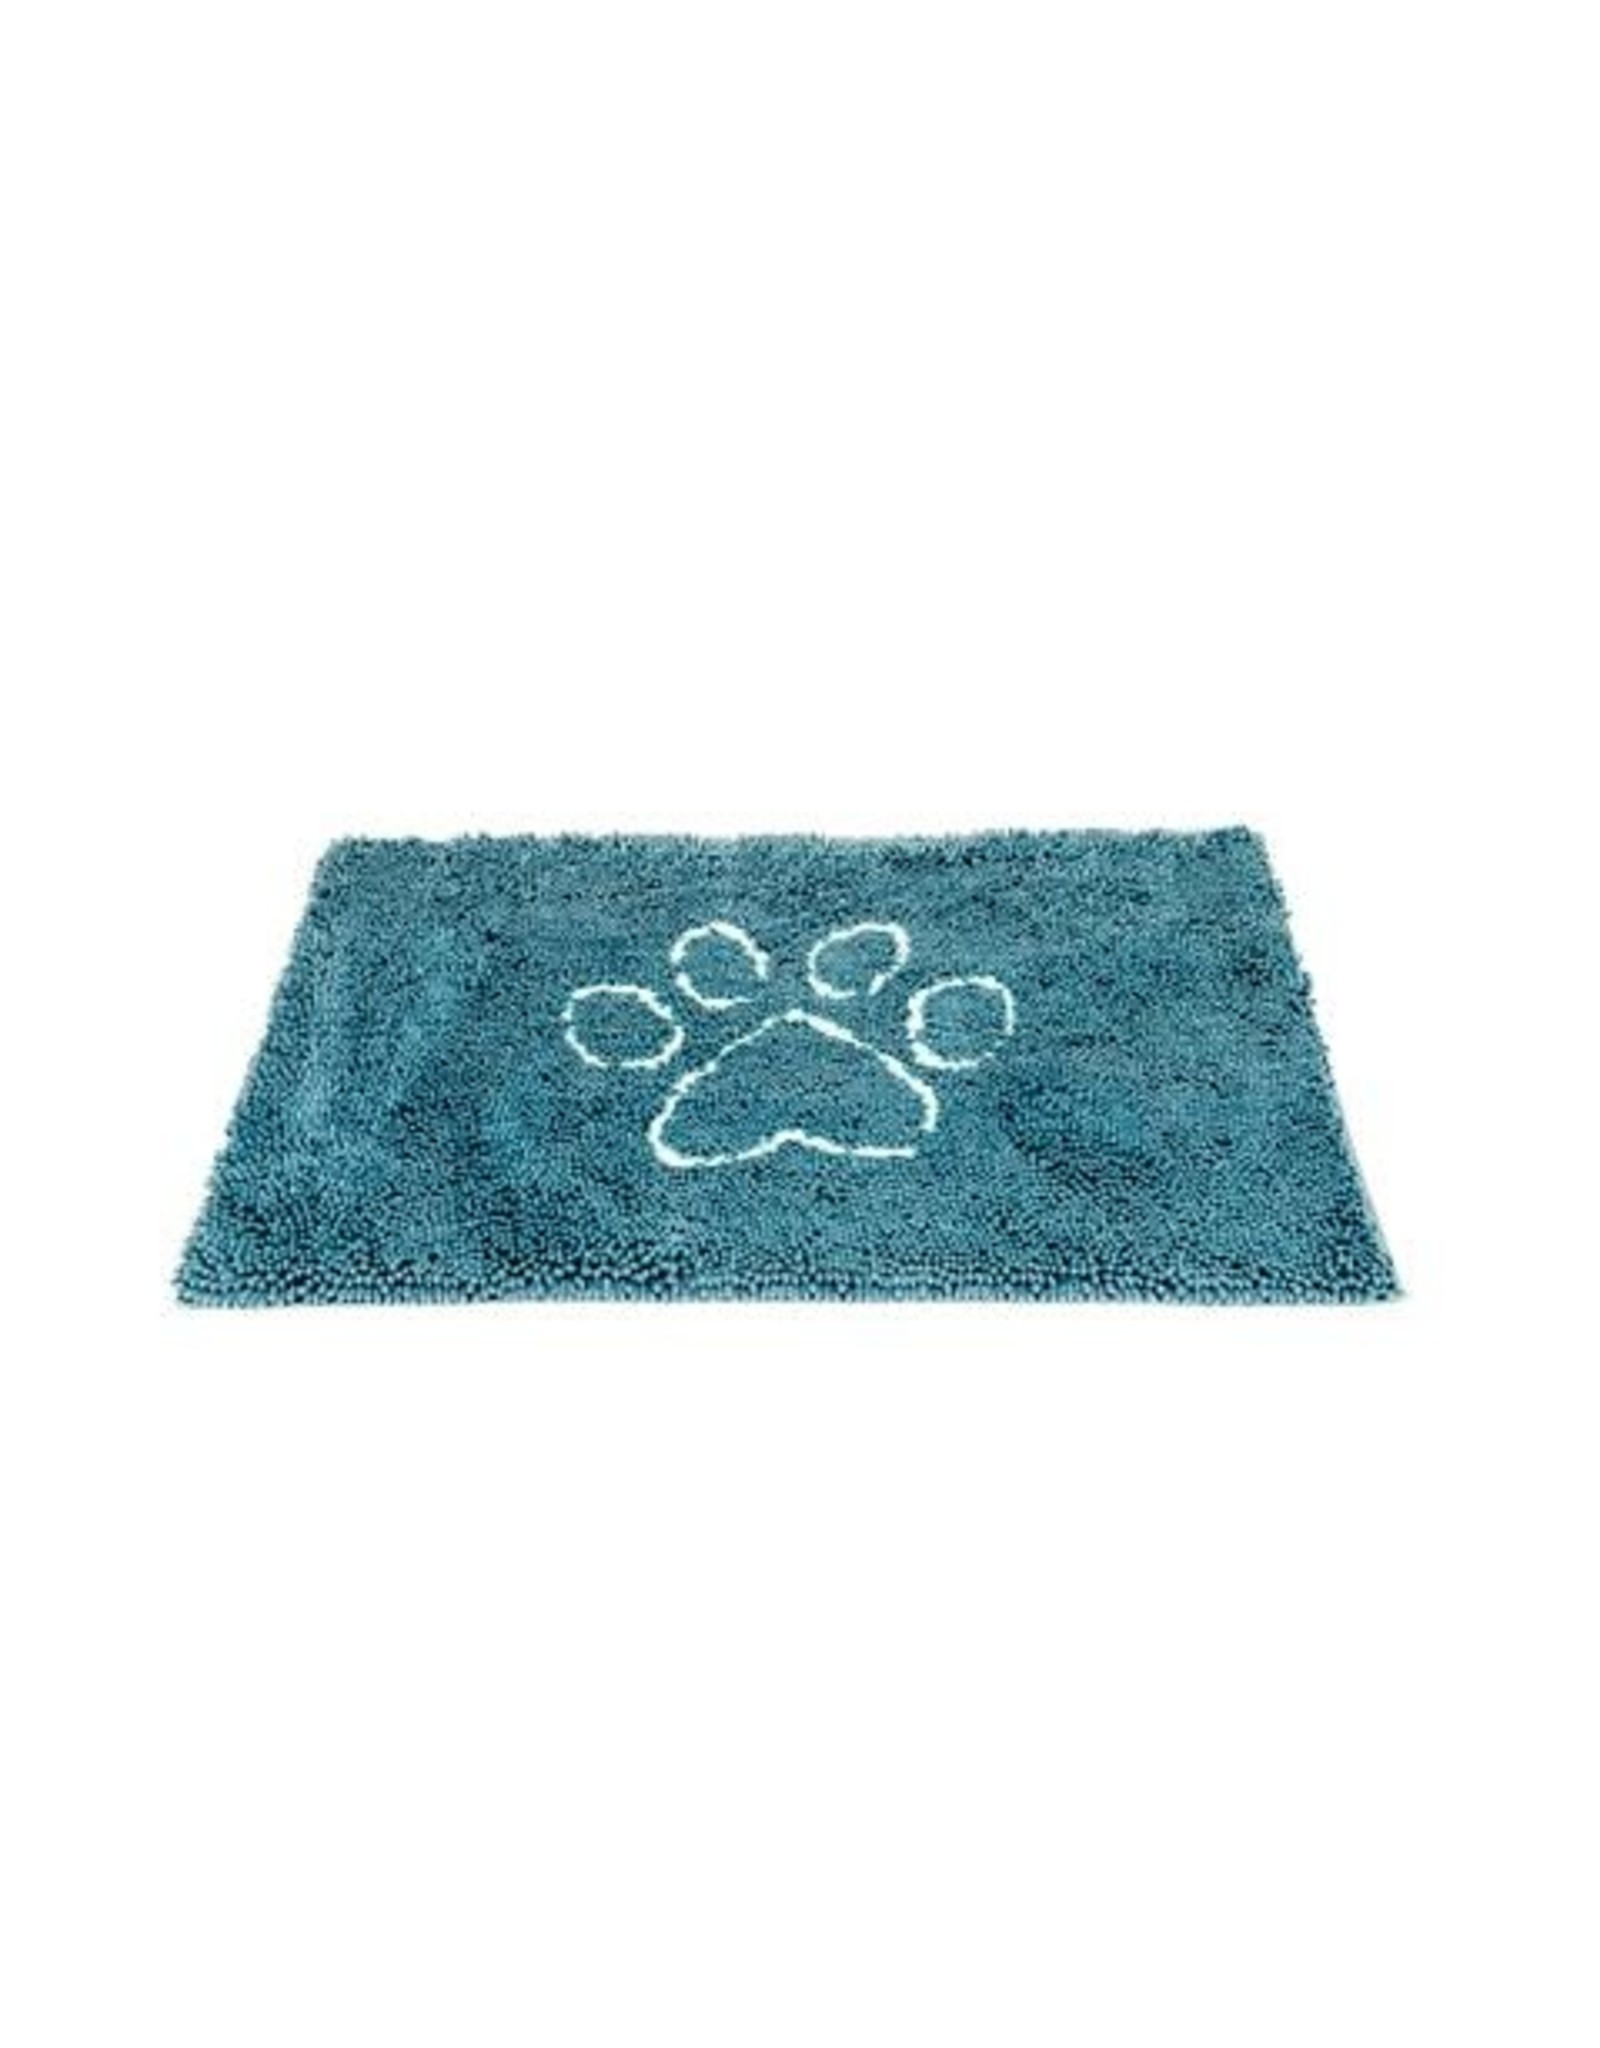 DogGoneSmart DGS Dirty Dog Doormat Medium 31x20 Pacific Blue